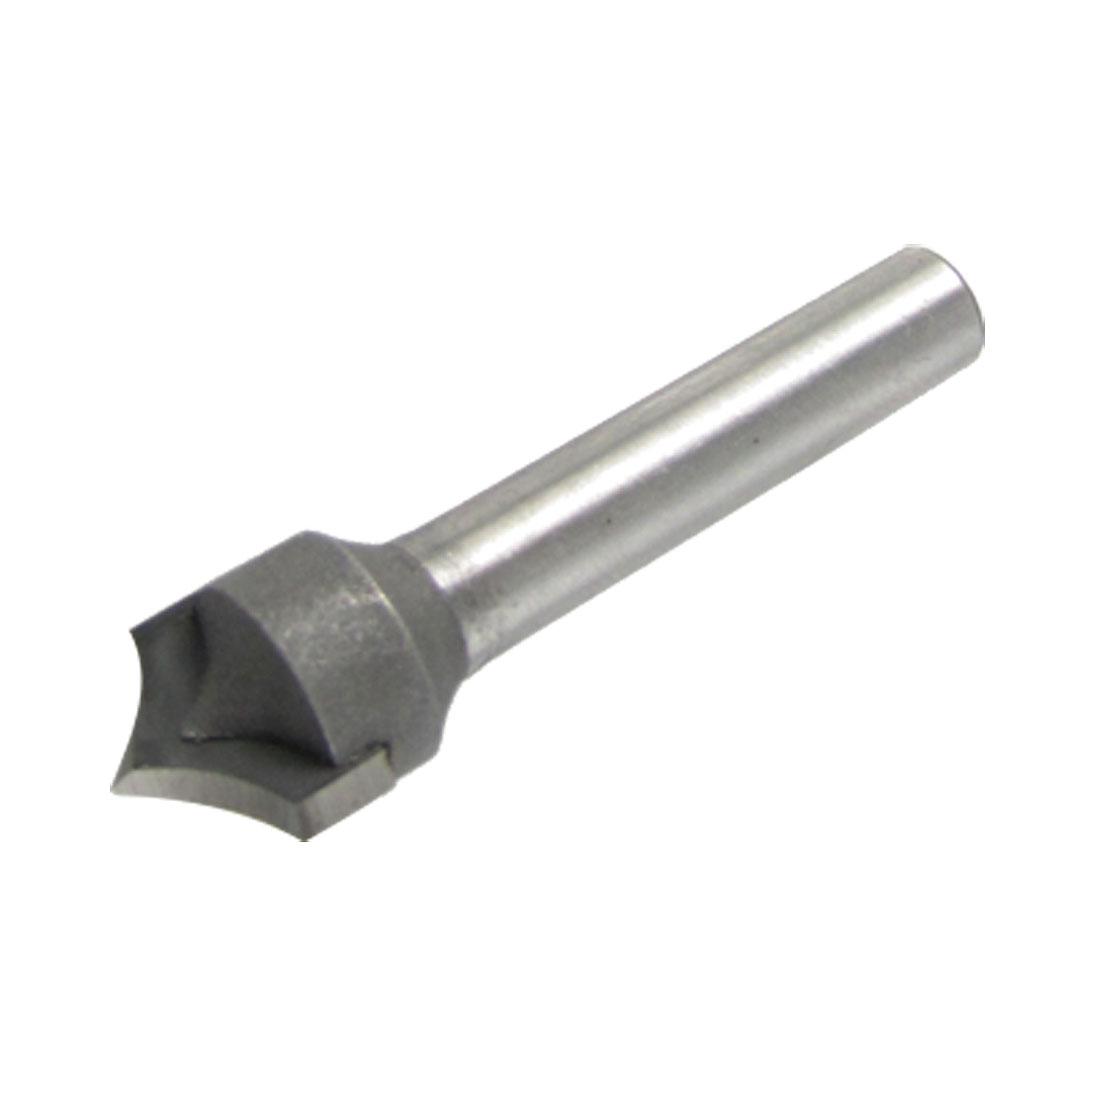 1-4-x-1-2-Standard-Point-Cutting-Carving-Router-Bit